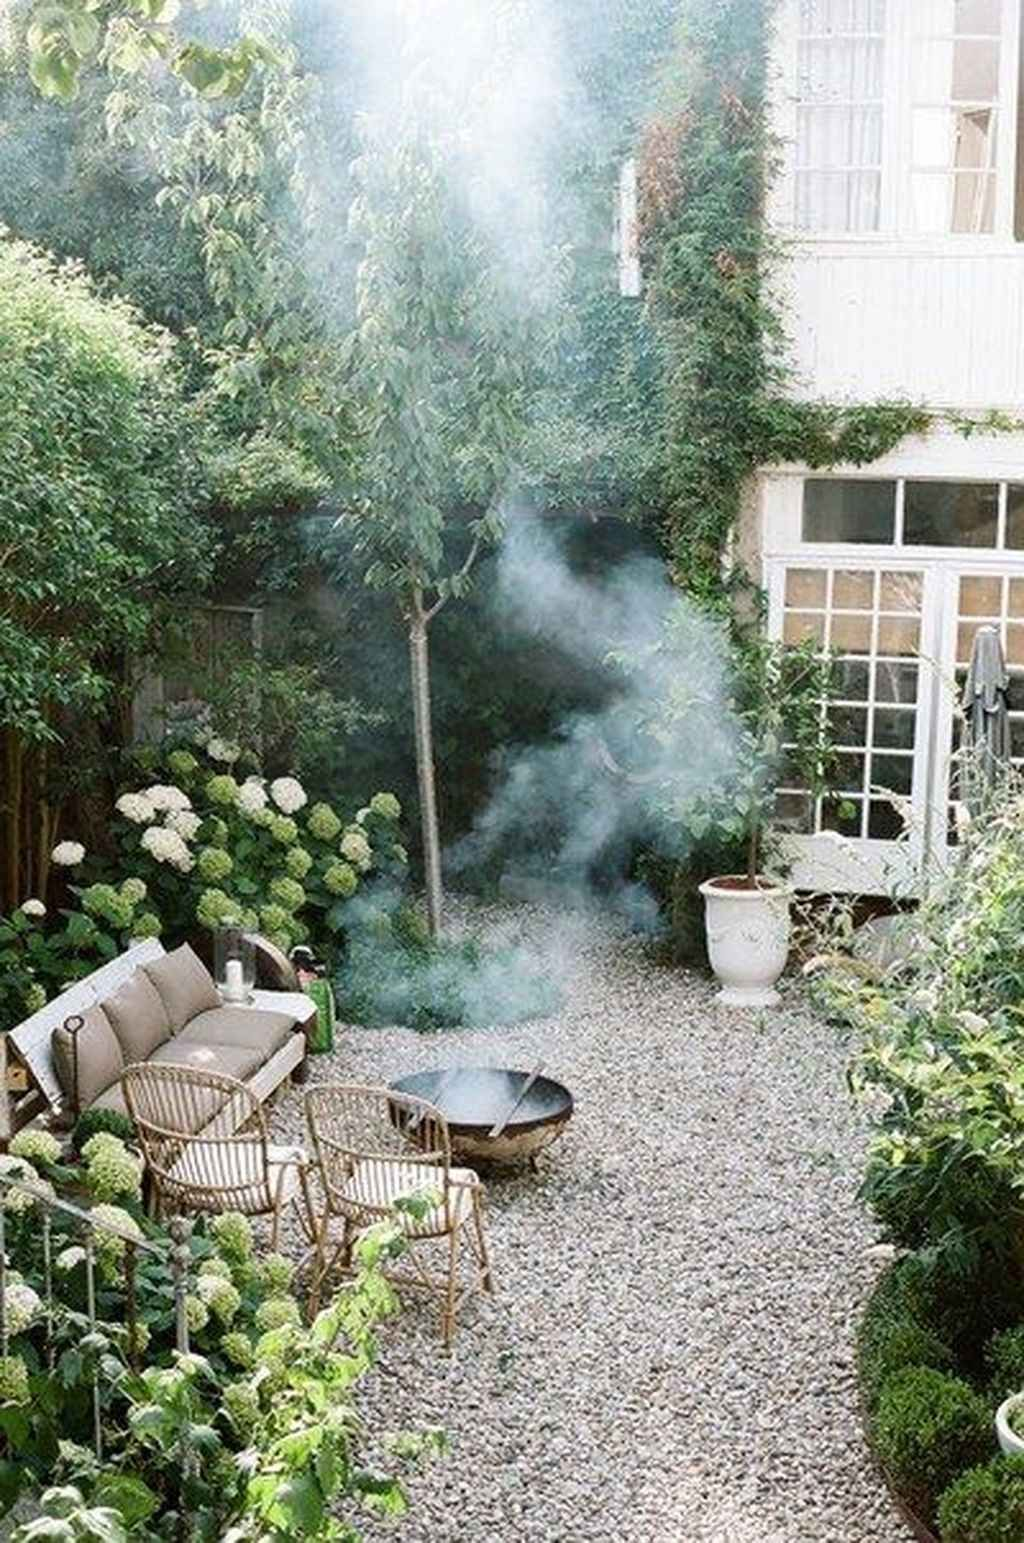 100 Inspiring Small Courtyard Garden Design Ideas #smallcourtyardgardens Inspiring Small Courtyard Garden Design Ideas Courtyard gardens, enclosed on all sides by walls or fences, can transform a cramped space into an oasis. They preserve privacy while welcoming sunlight. They make even the smallest home feel larger. Courtyard gardens… Continue Reading → #smallcourtyardgardens 100 Inspiring Small Courtyard Garden Design Ideas #smallcourtyardgardens Inspiring Small Courtyard Garden Design Ide #smallcourtyardgardens